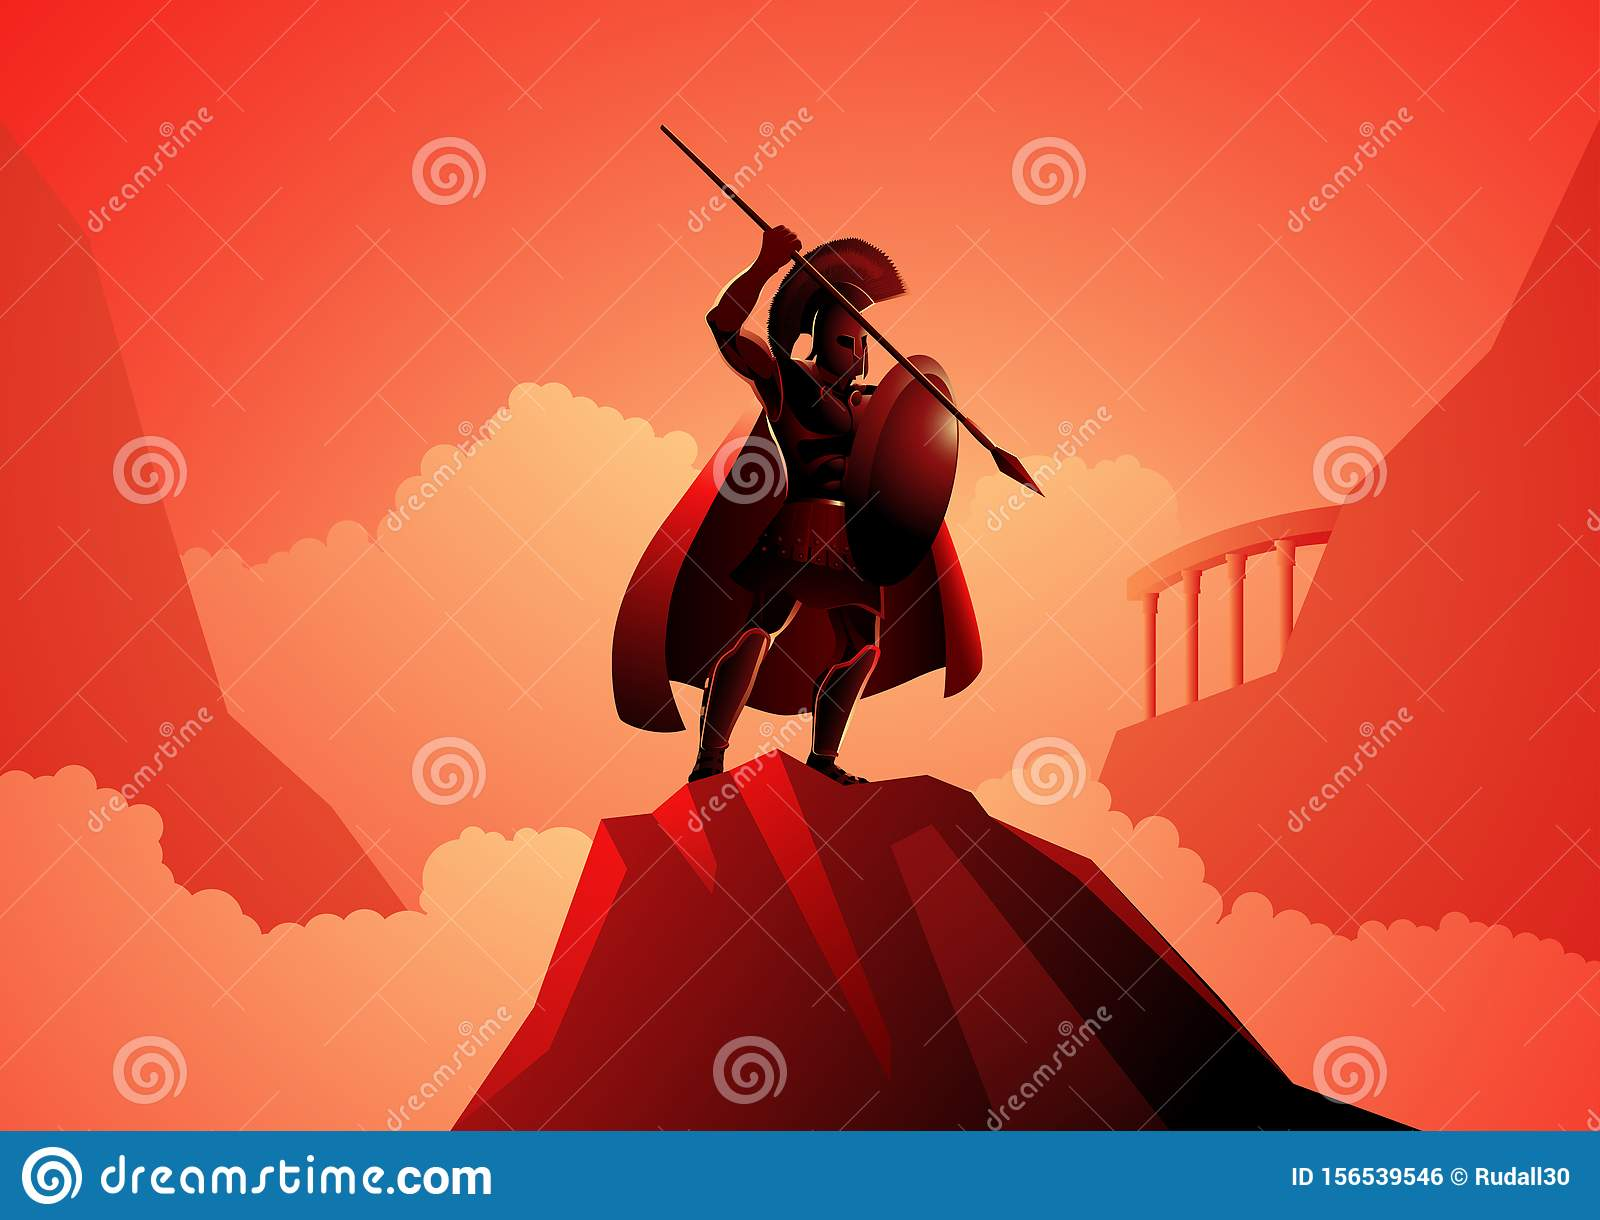 Ares The Greek God Of War Stock Vector Illustration Of